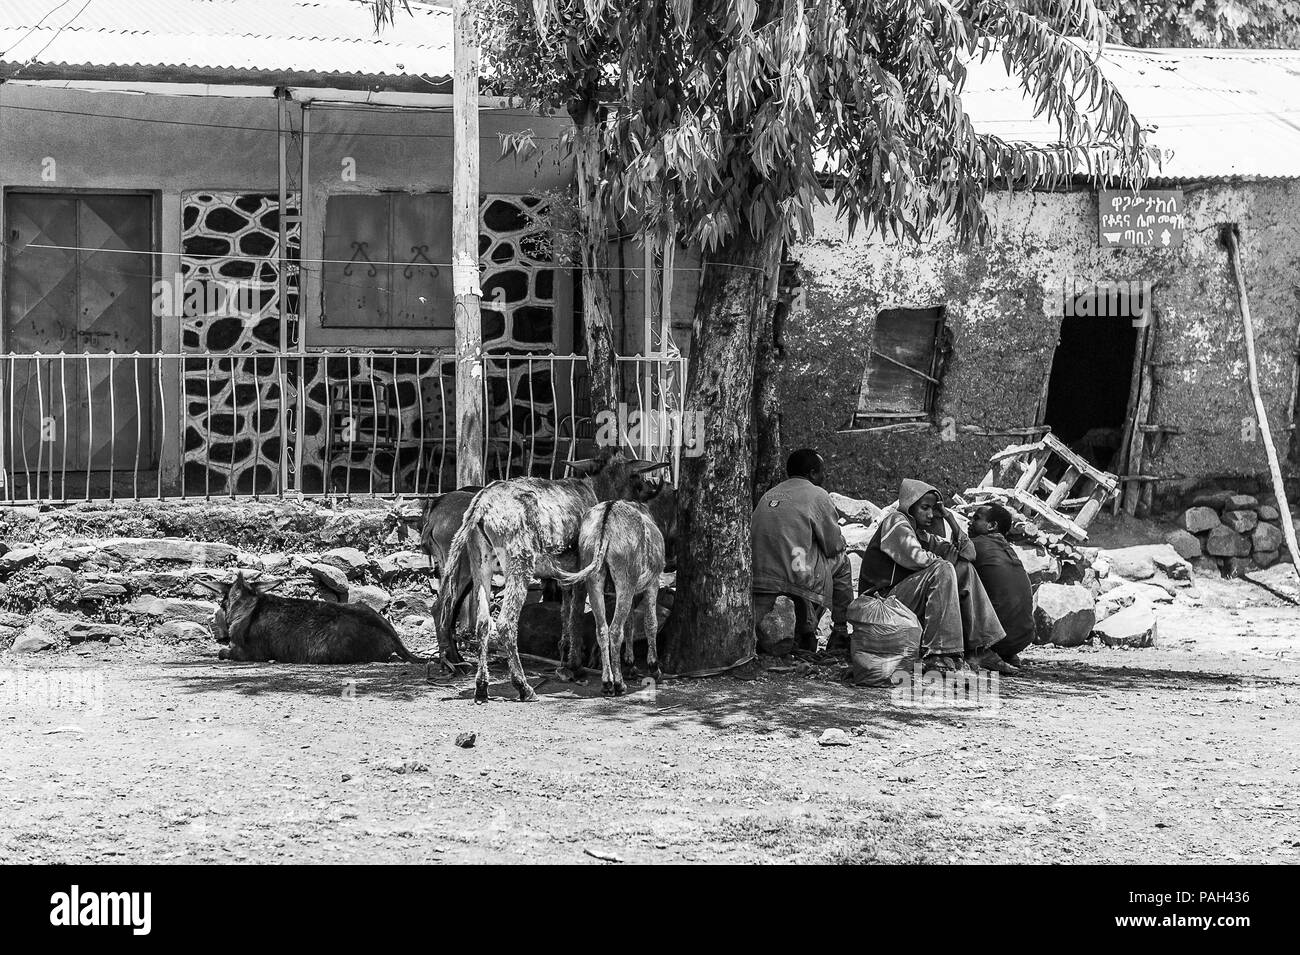 OMO, ETHIOPIA - SEPTEMBER 21, 2011: Unidentified Ethiopian people with donkeys in the street. People in Ethiopia suffer of poverty due to the unstable Stock Photo